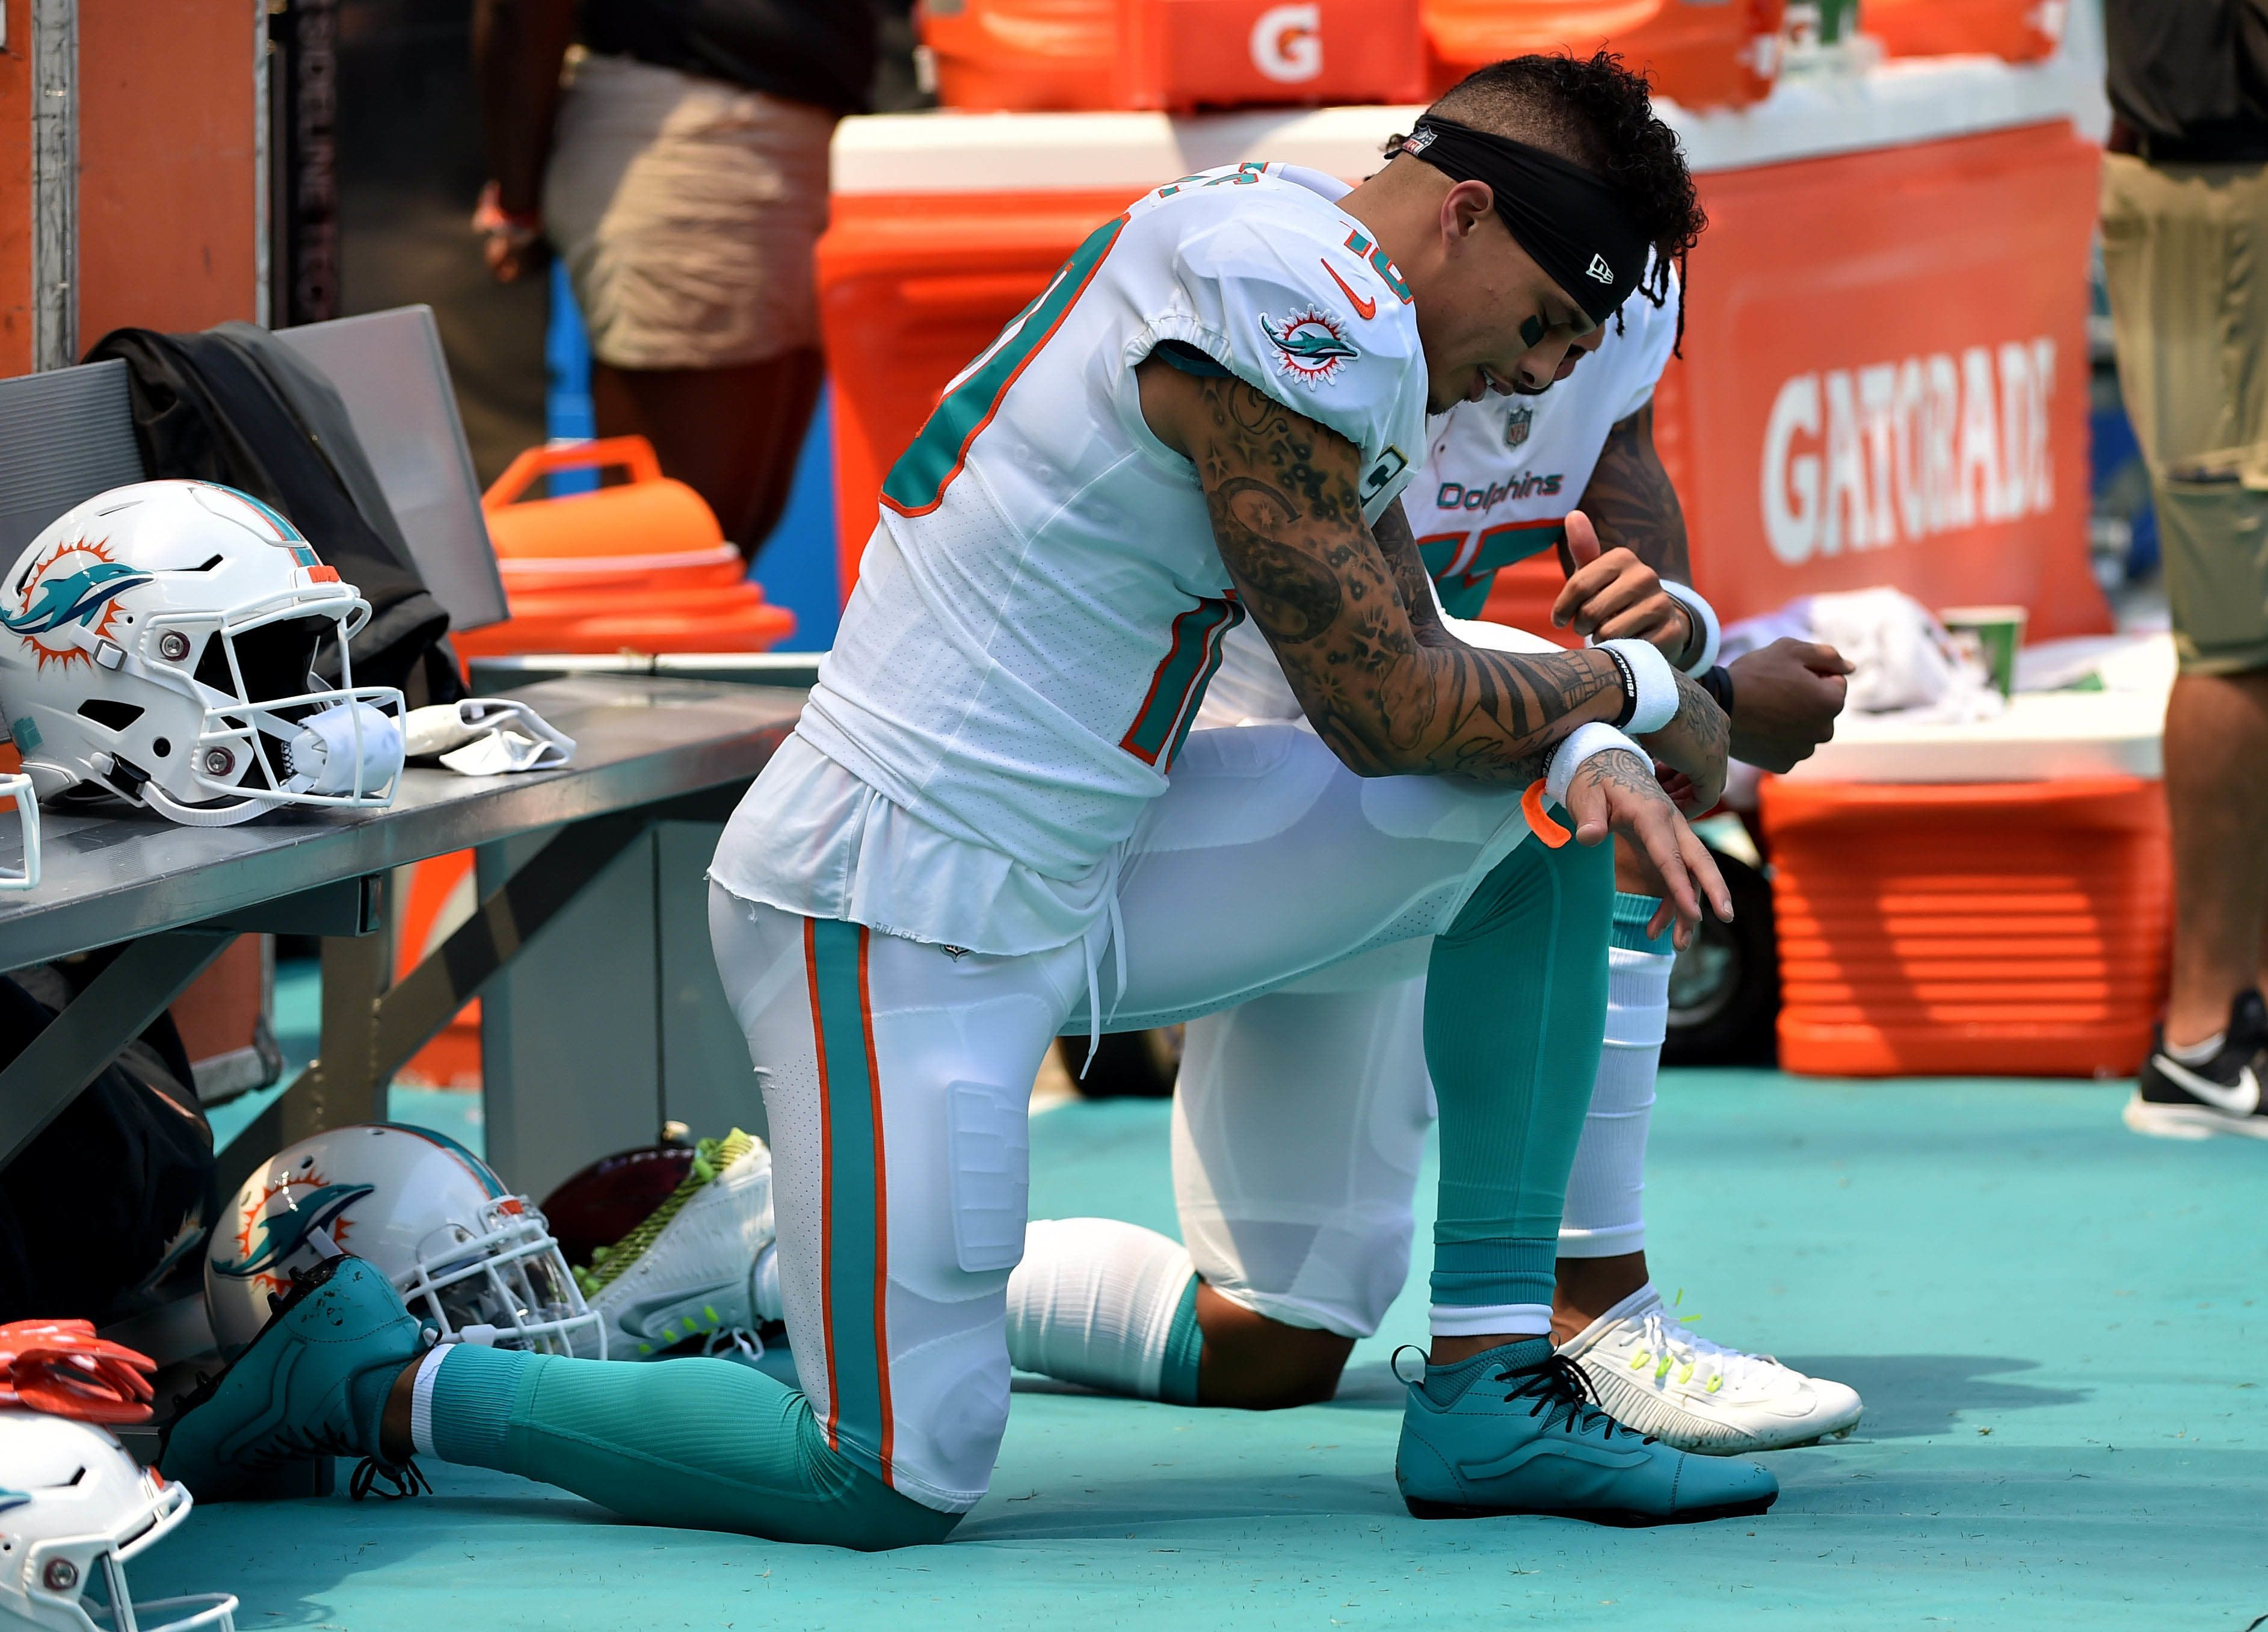 Miami Dolphins wide receiver Kenny Stills (left) and Dolphins wide receiver Albert Wilson (right) both kneel during the natio